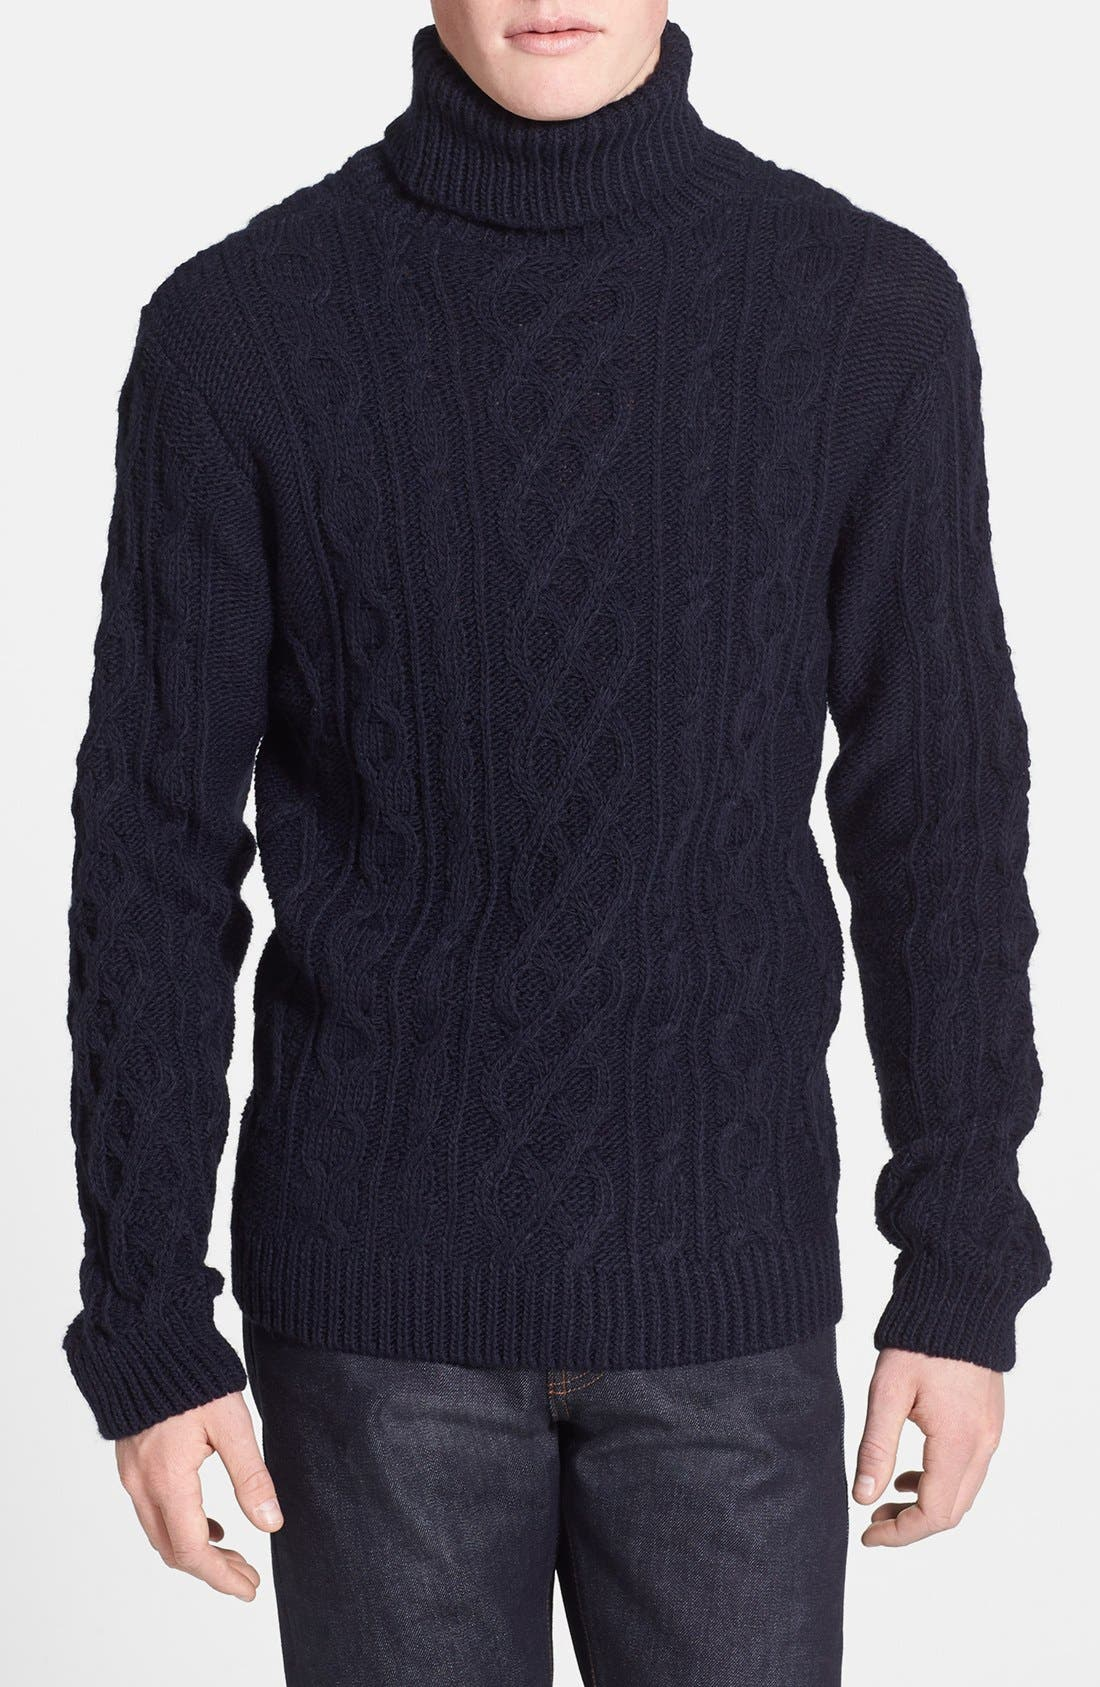 Alternate Image 1 Selected - Topman Chunky Cable Knit Turtleneck Sweater